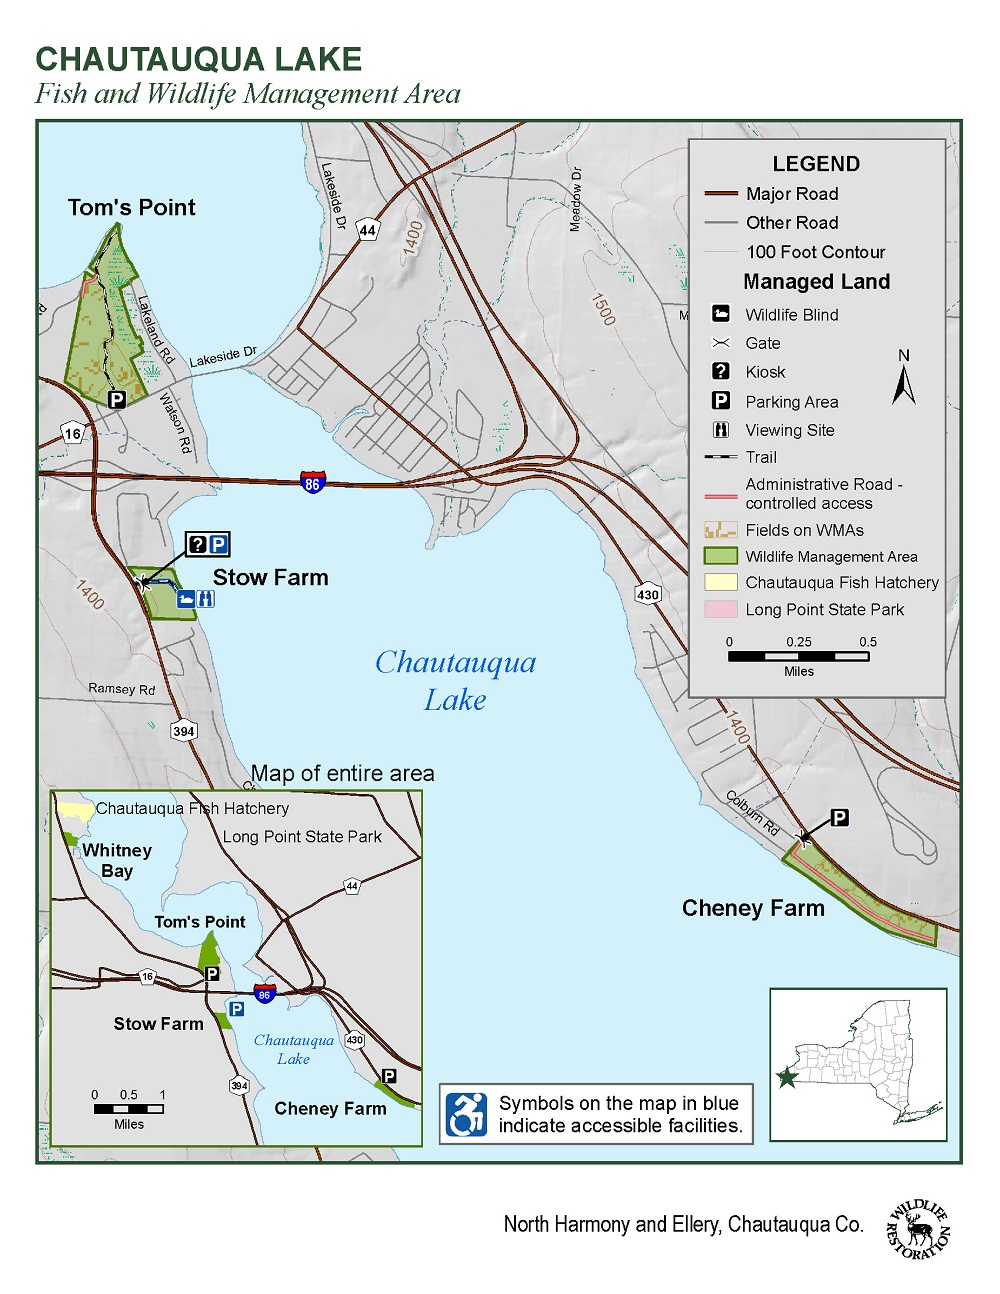 Map of Chautauqua Lake Fish and Wildlife Management Area